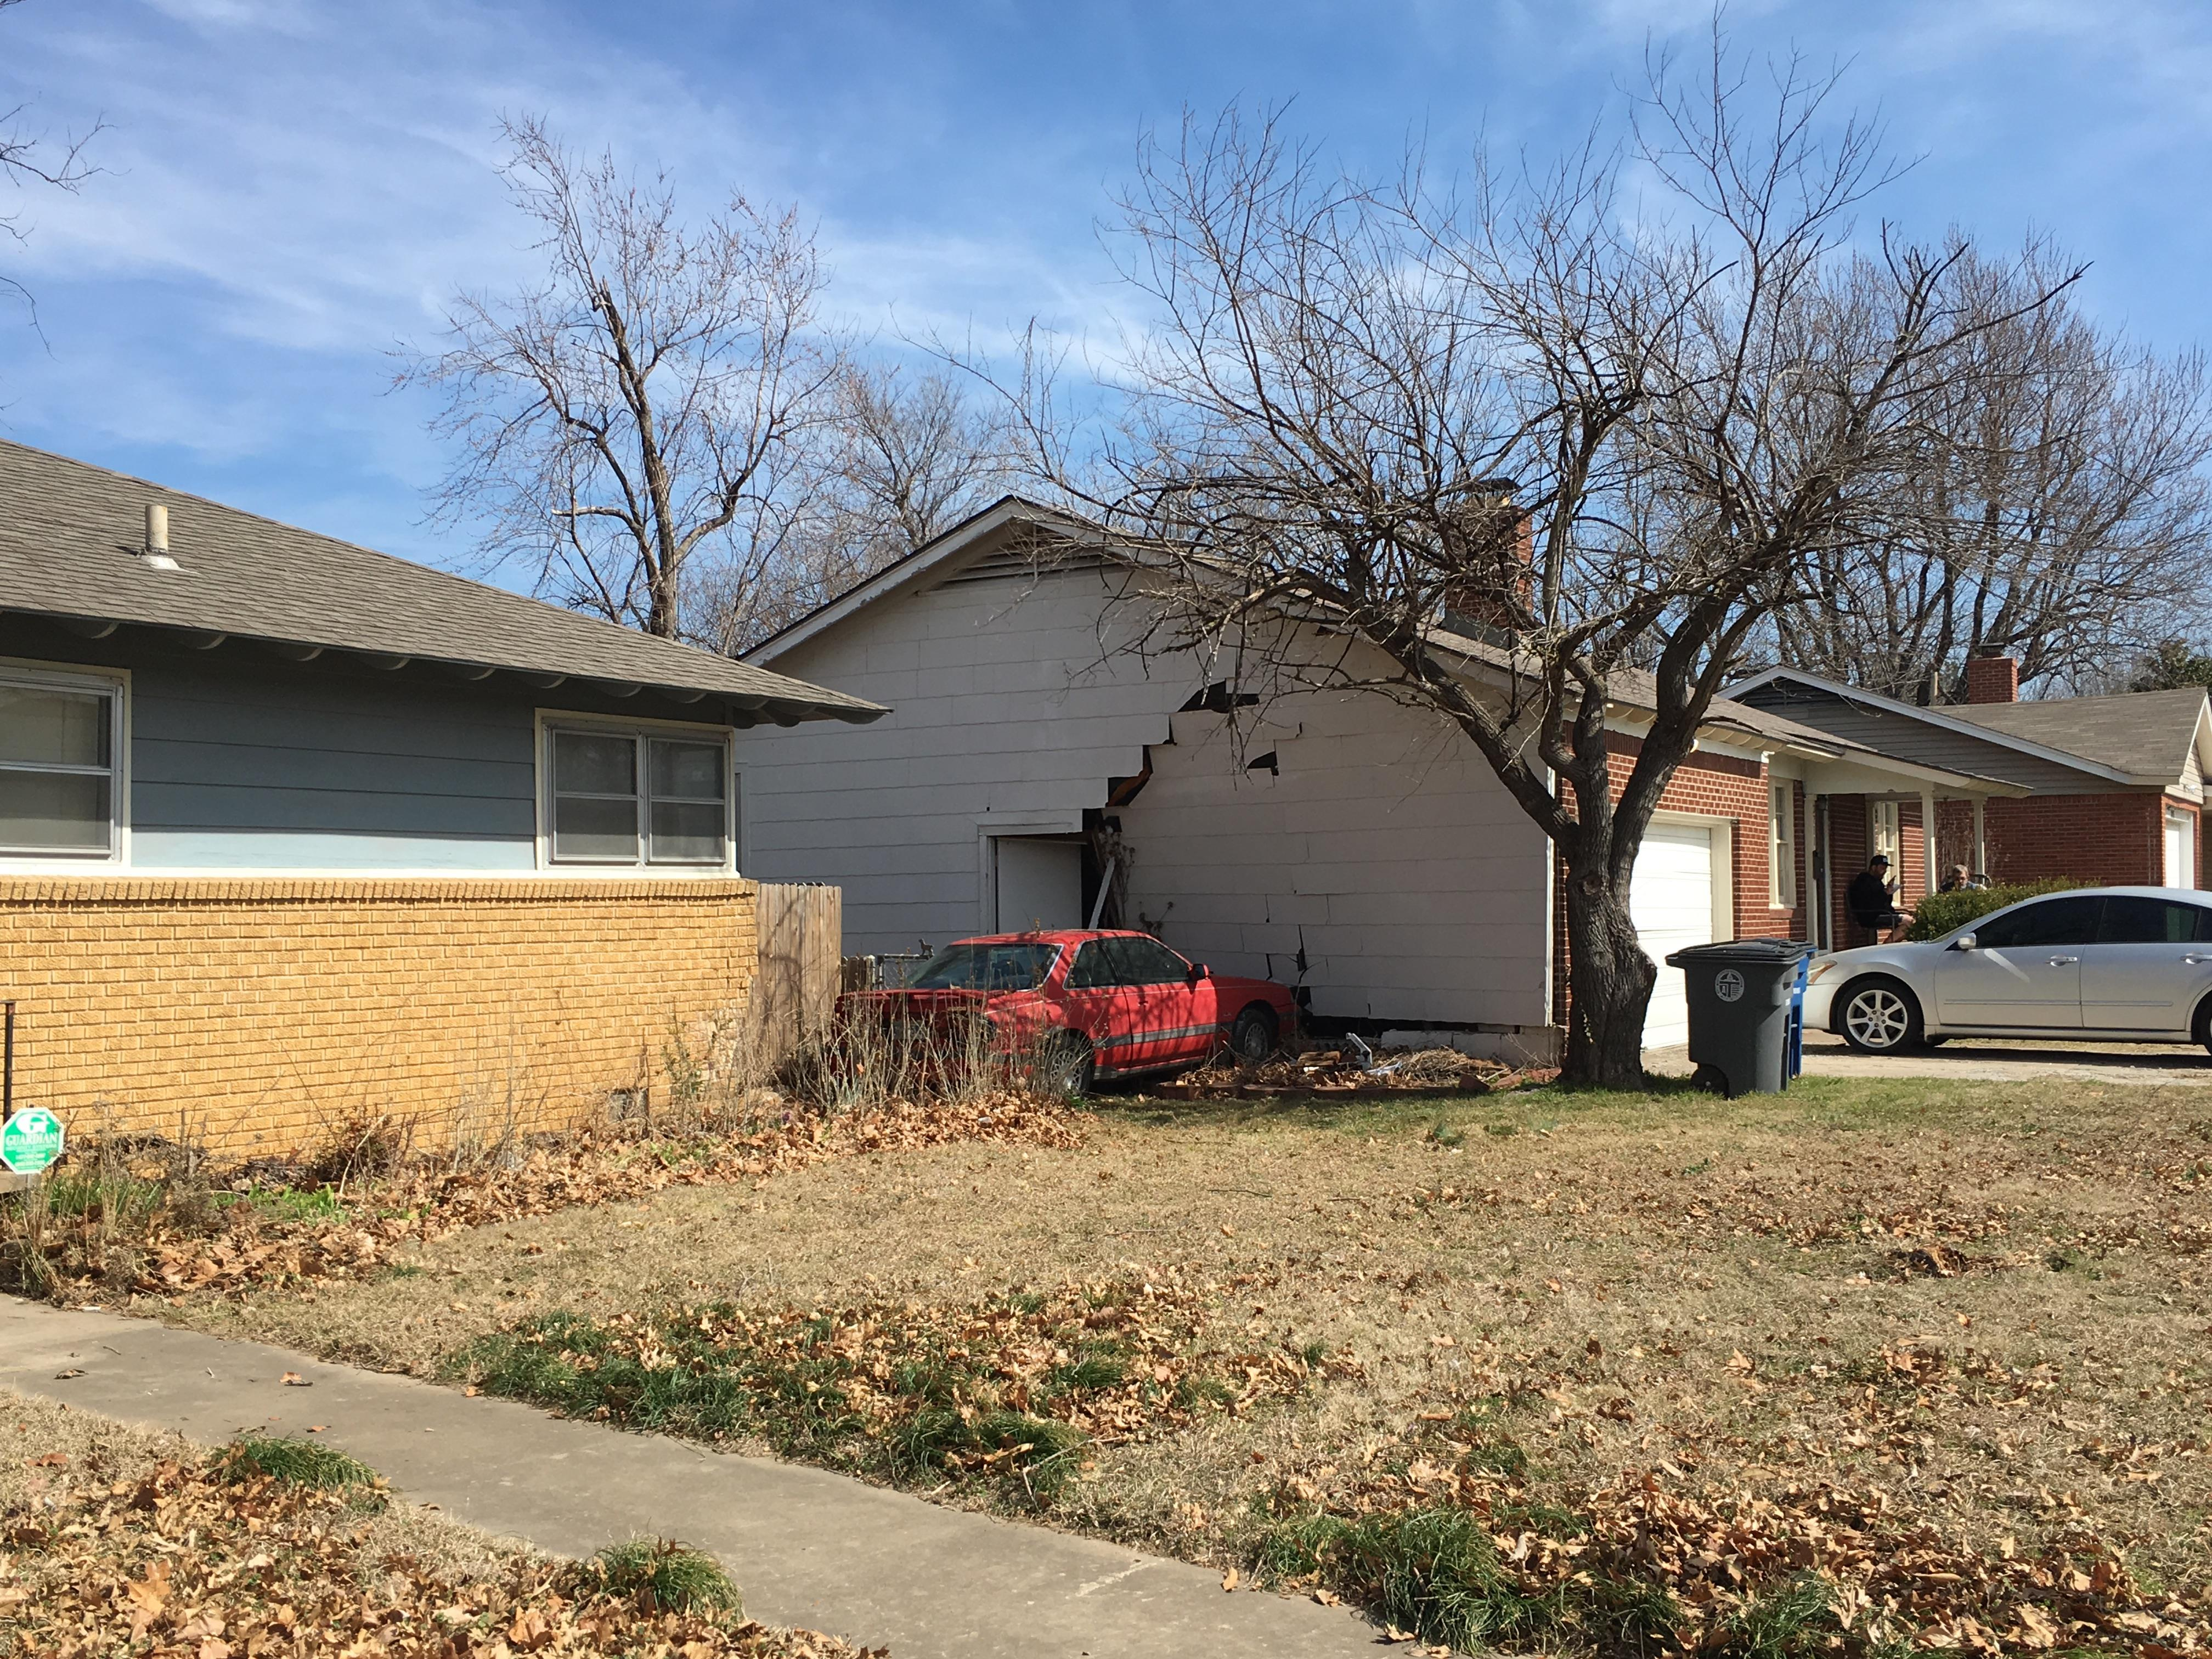 Officers responded just before 11 a.m. to a house near 4th and Harvard. Police say a red Mazda crashed into the home. (KTUL)